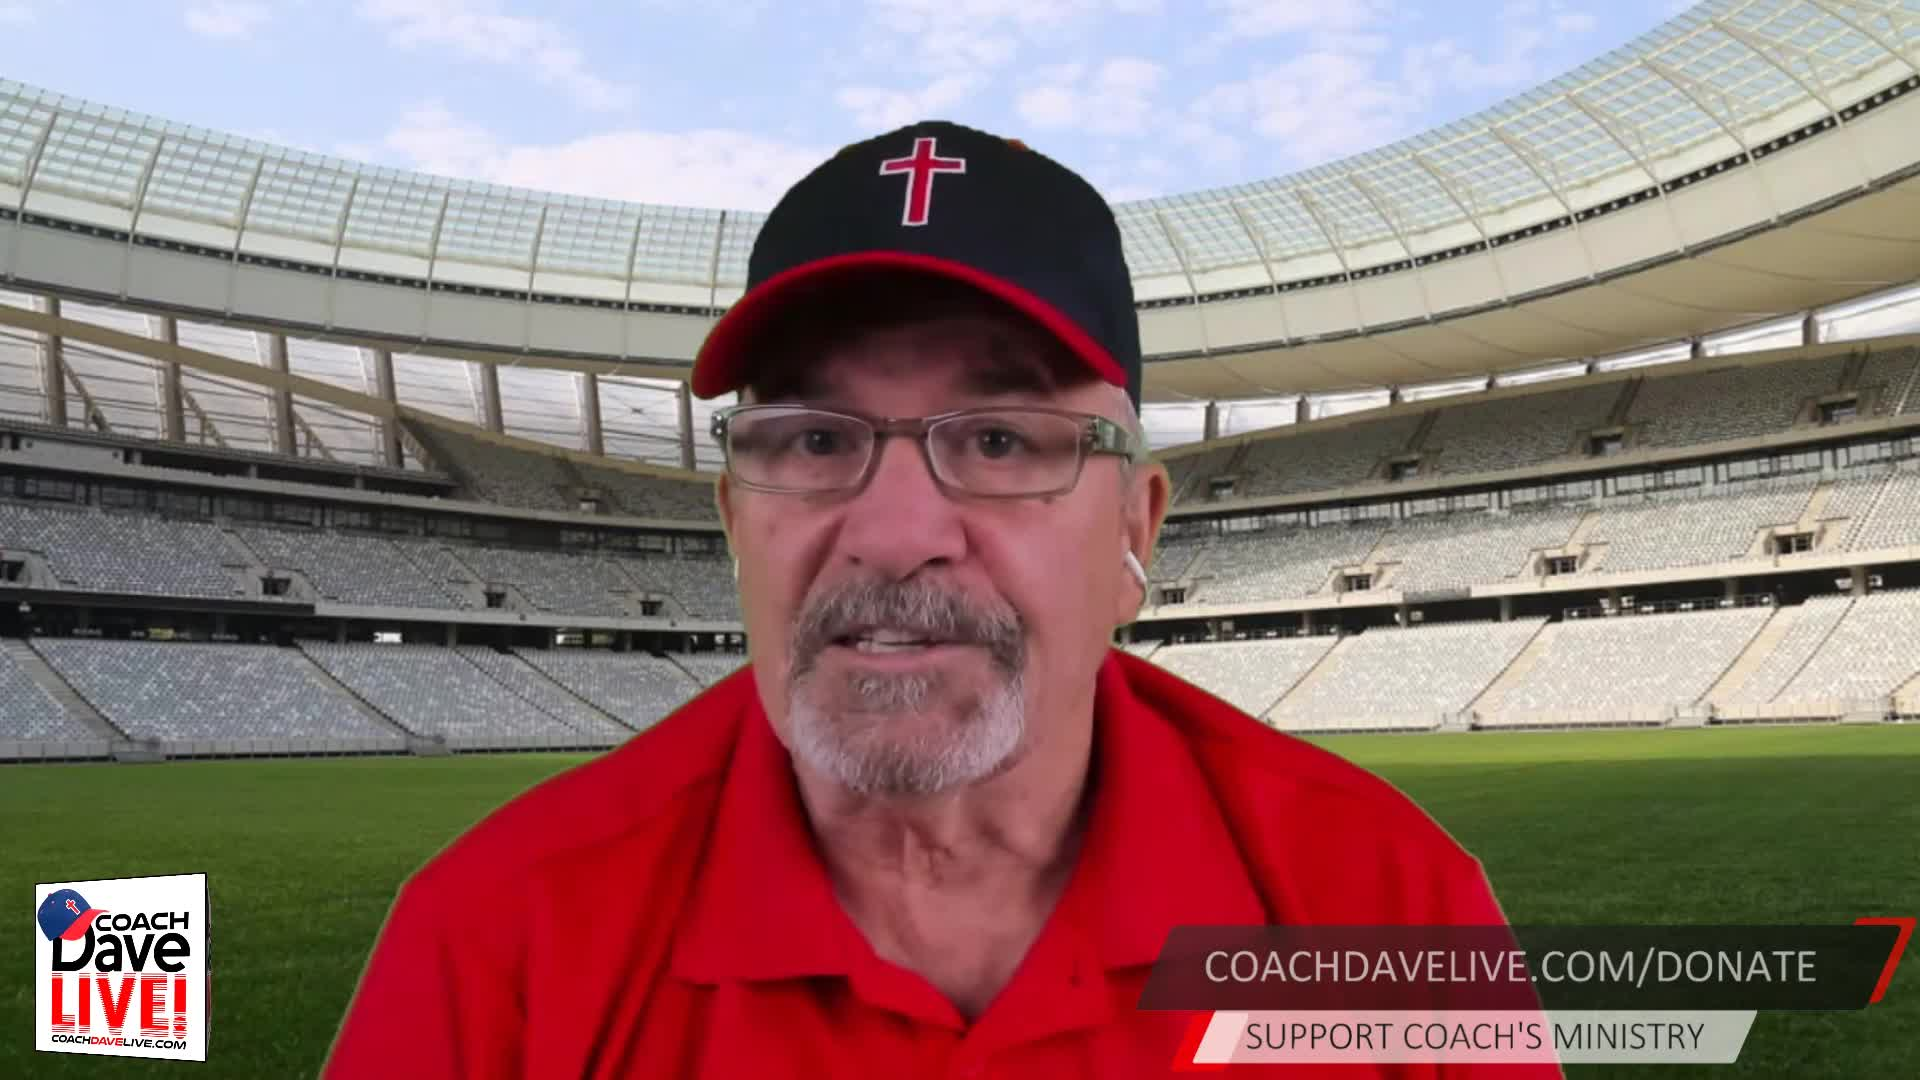 Coach Dave LIVE | 01-07-2021 | TRUTH ABOUT DC CAPITOL BREACH